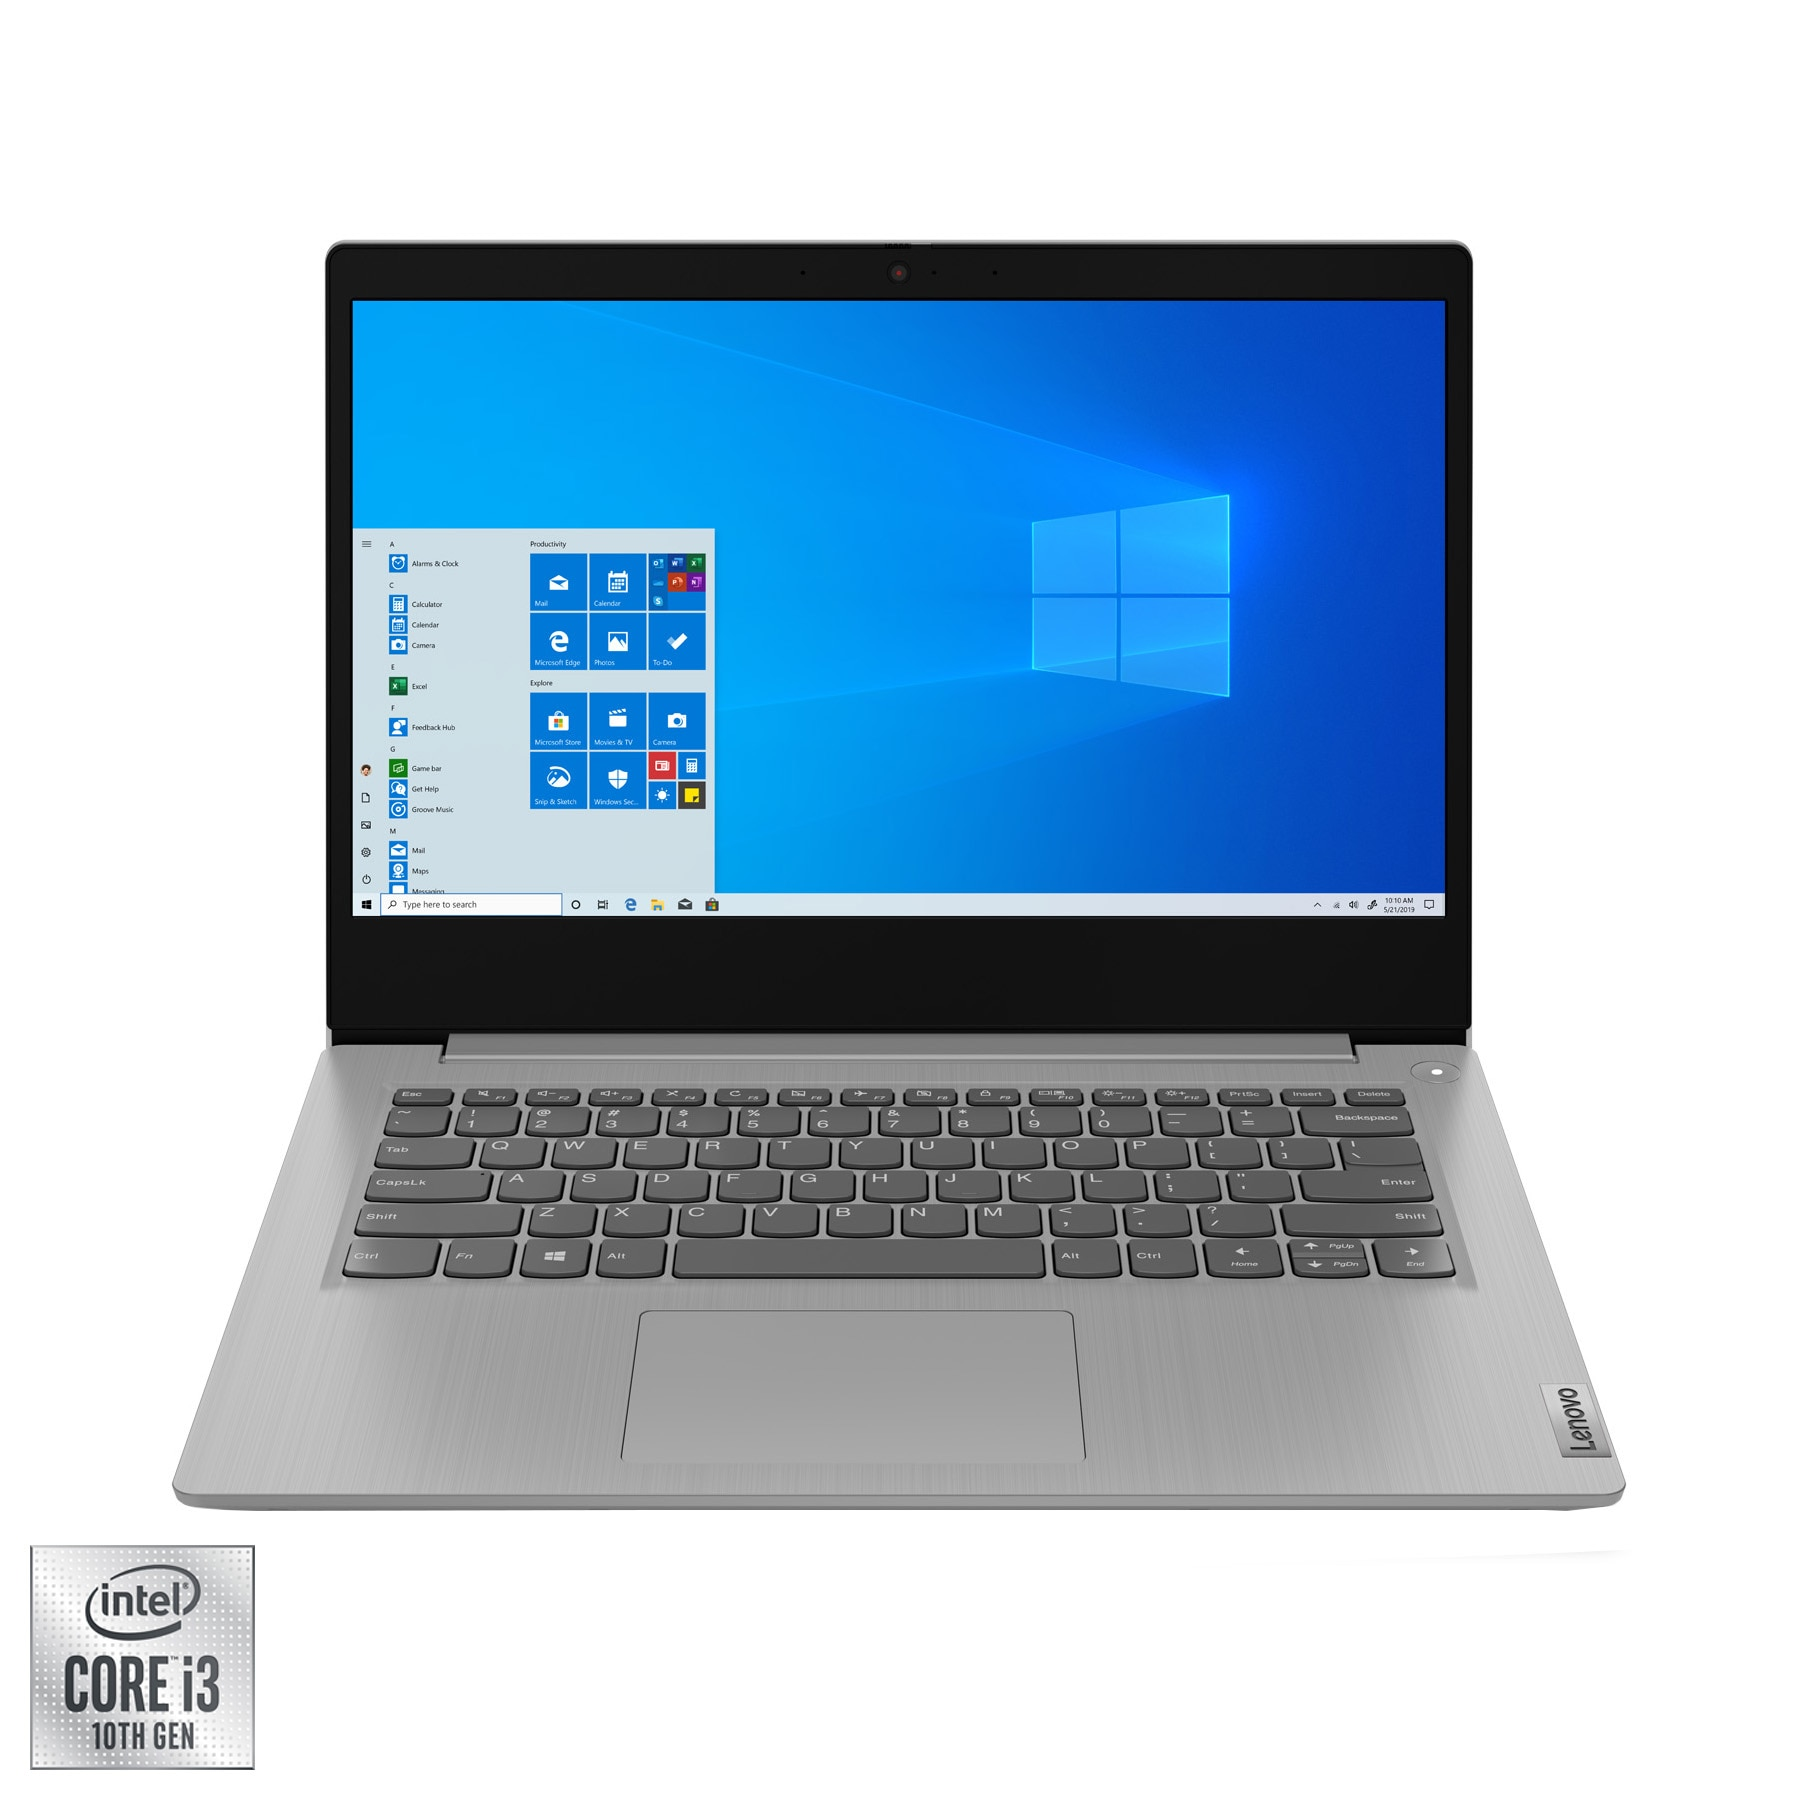 "Fotografie Laptop ultraportabil Lenovo IdeaPad 3 14IIL05 cu procesor Intel Core i3-1005G1 pana la 3.40 GHz, 14"", Full HD, 4GB, 128GB SSD, Intel UHD Graphics, Windows 10 Home S, Iron Grey"